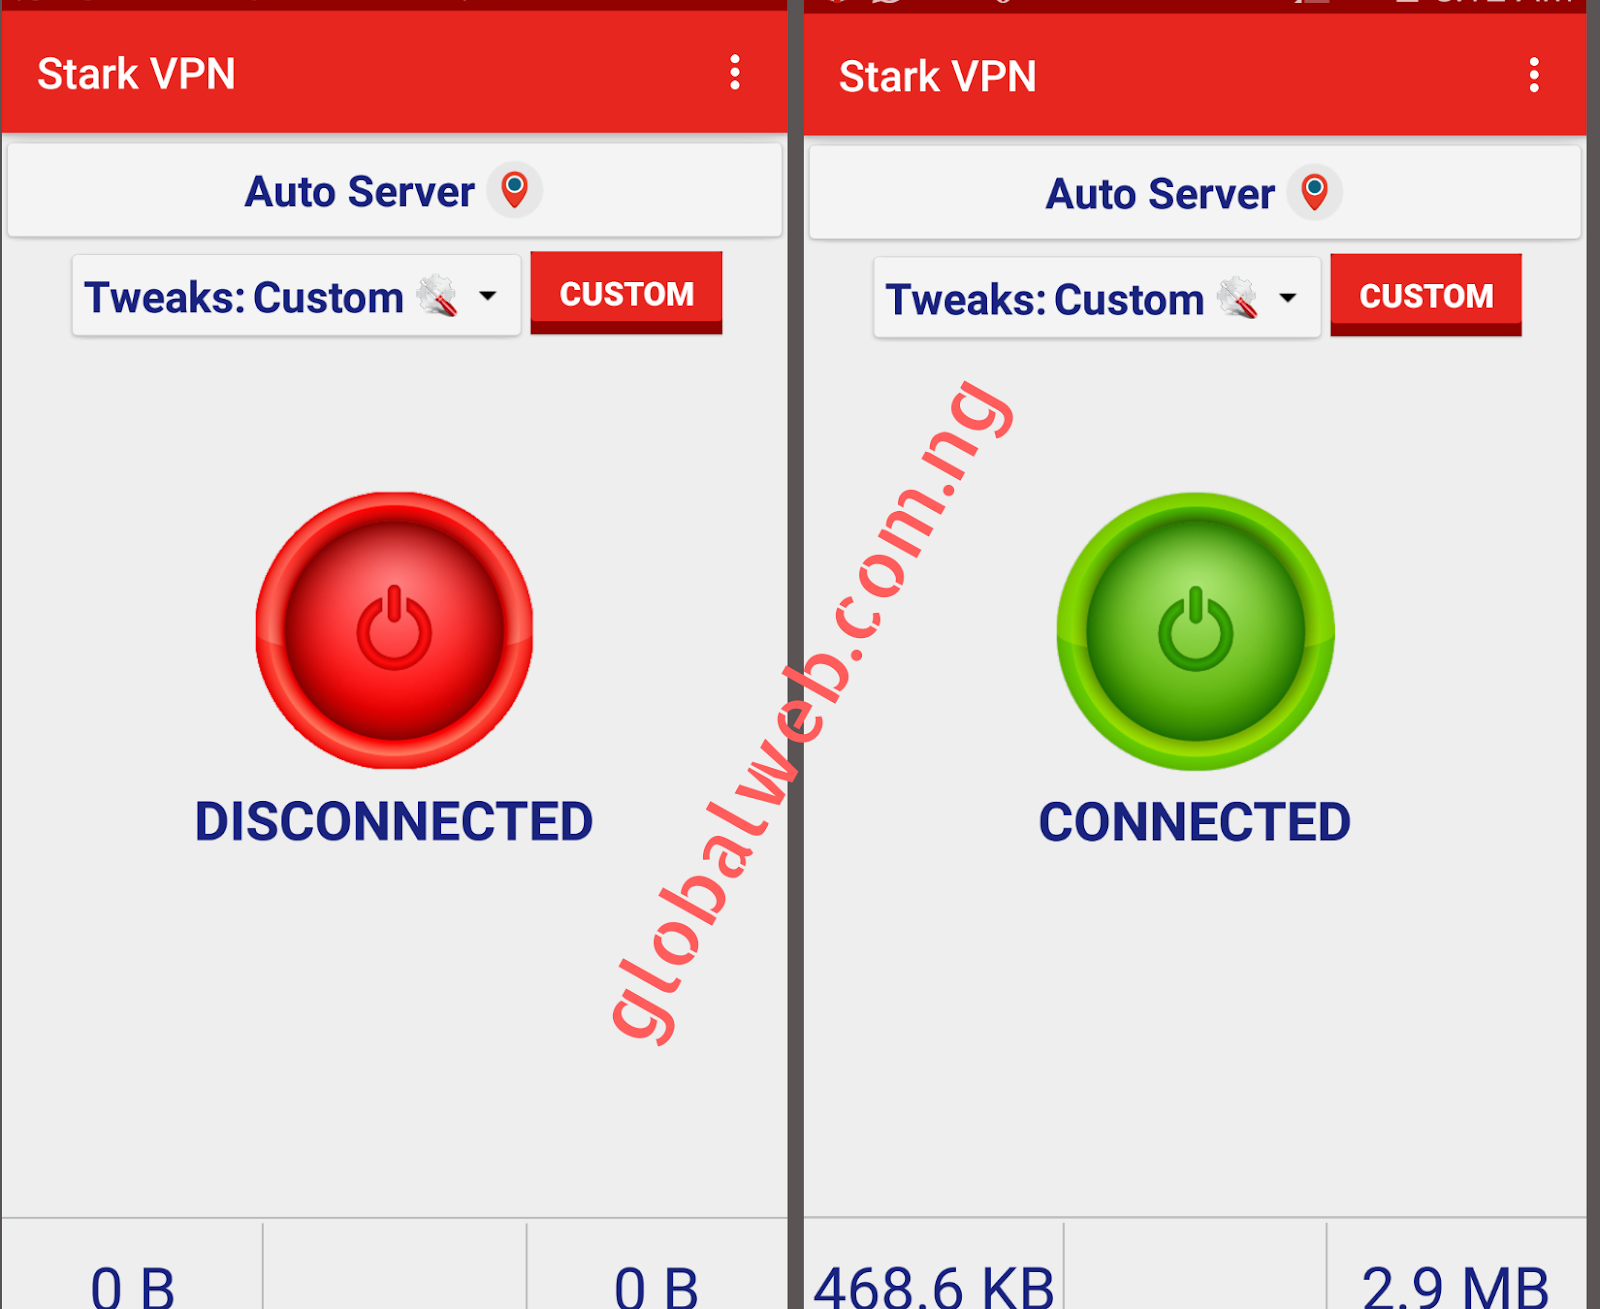 Latest Stark VPN Settings for MTN Free Browsing 2019